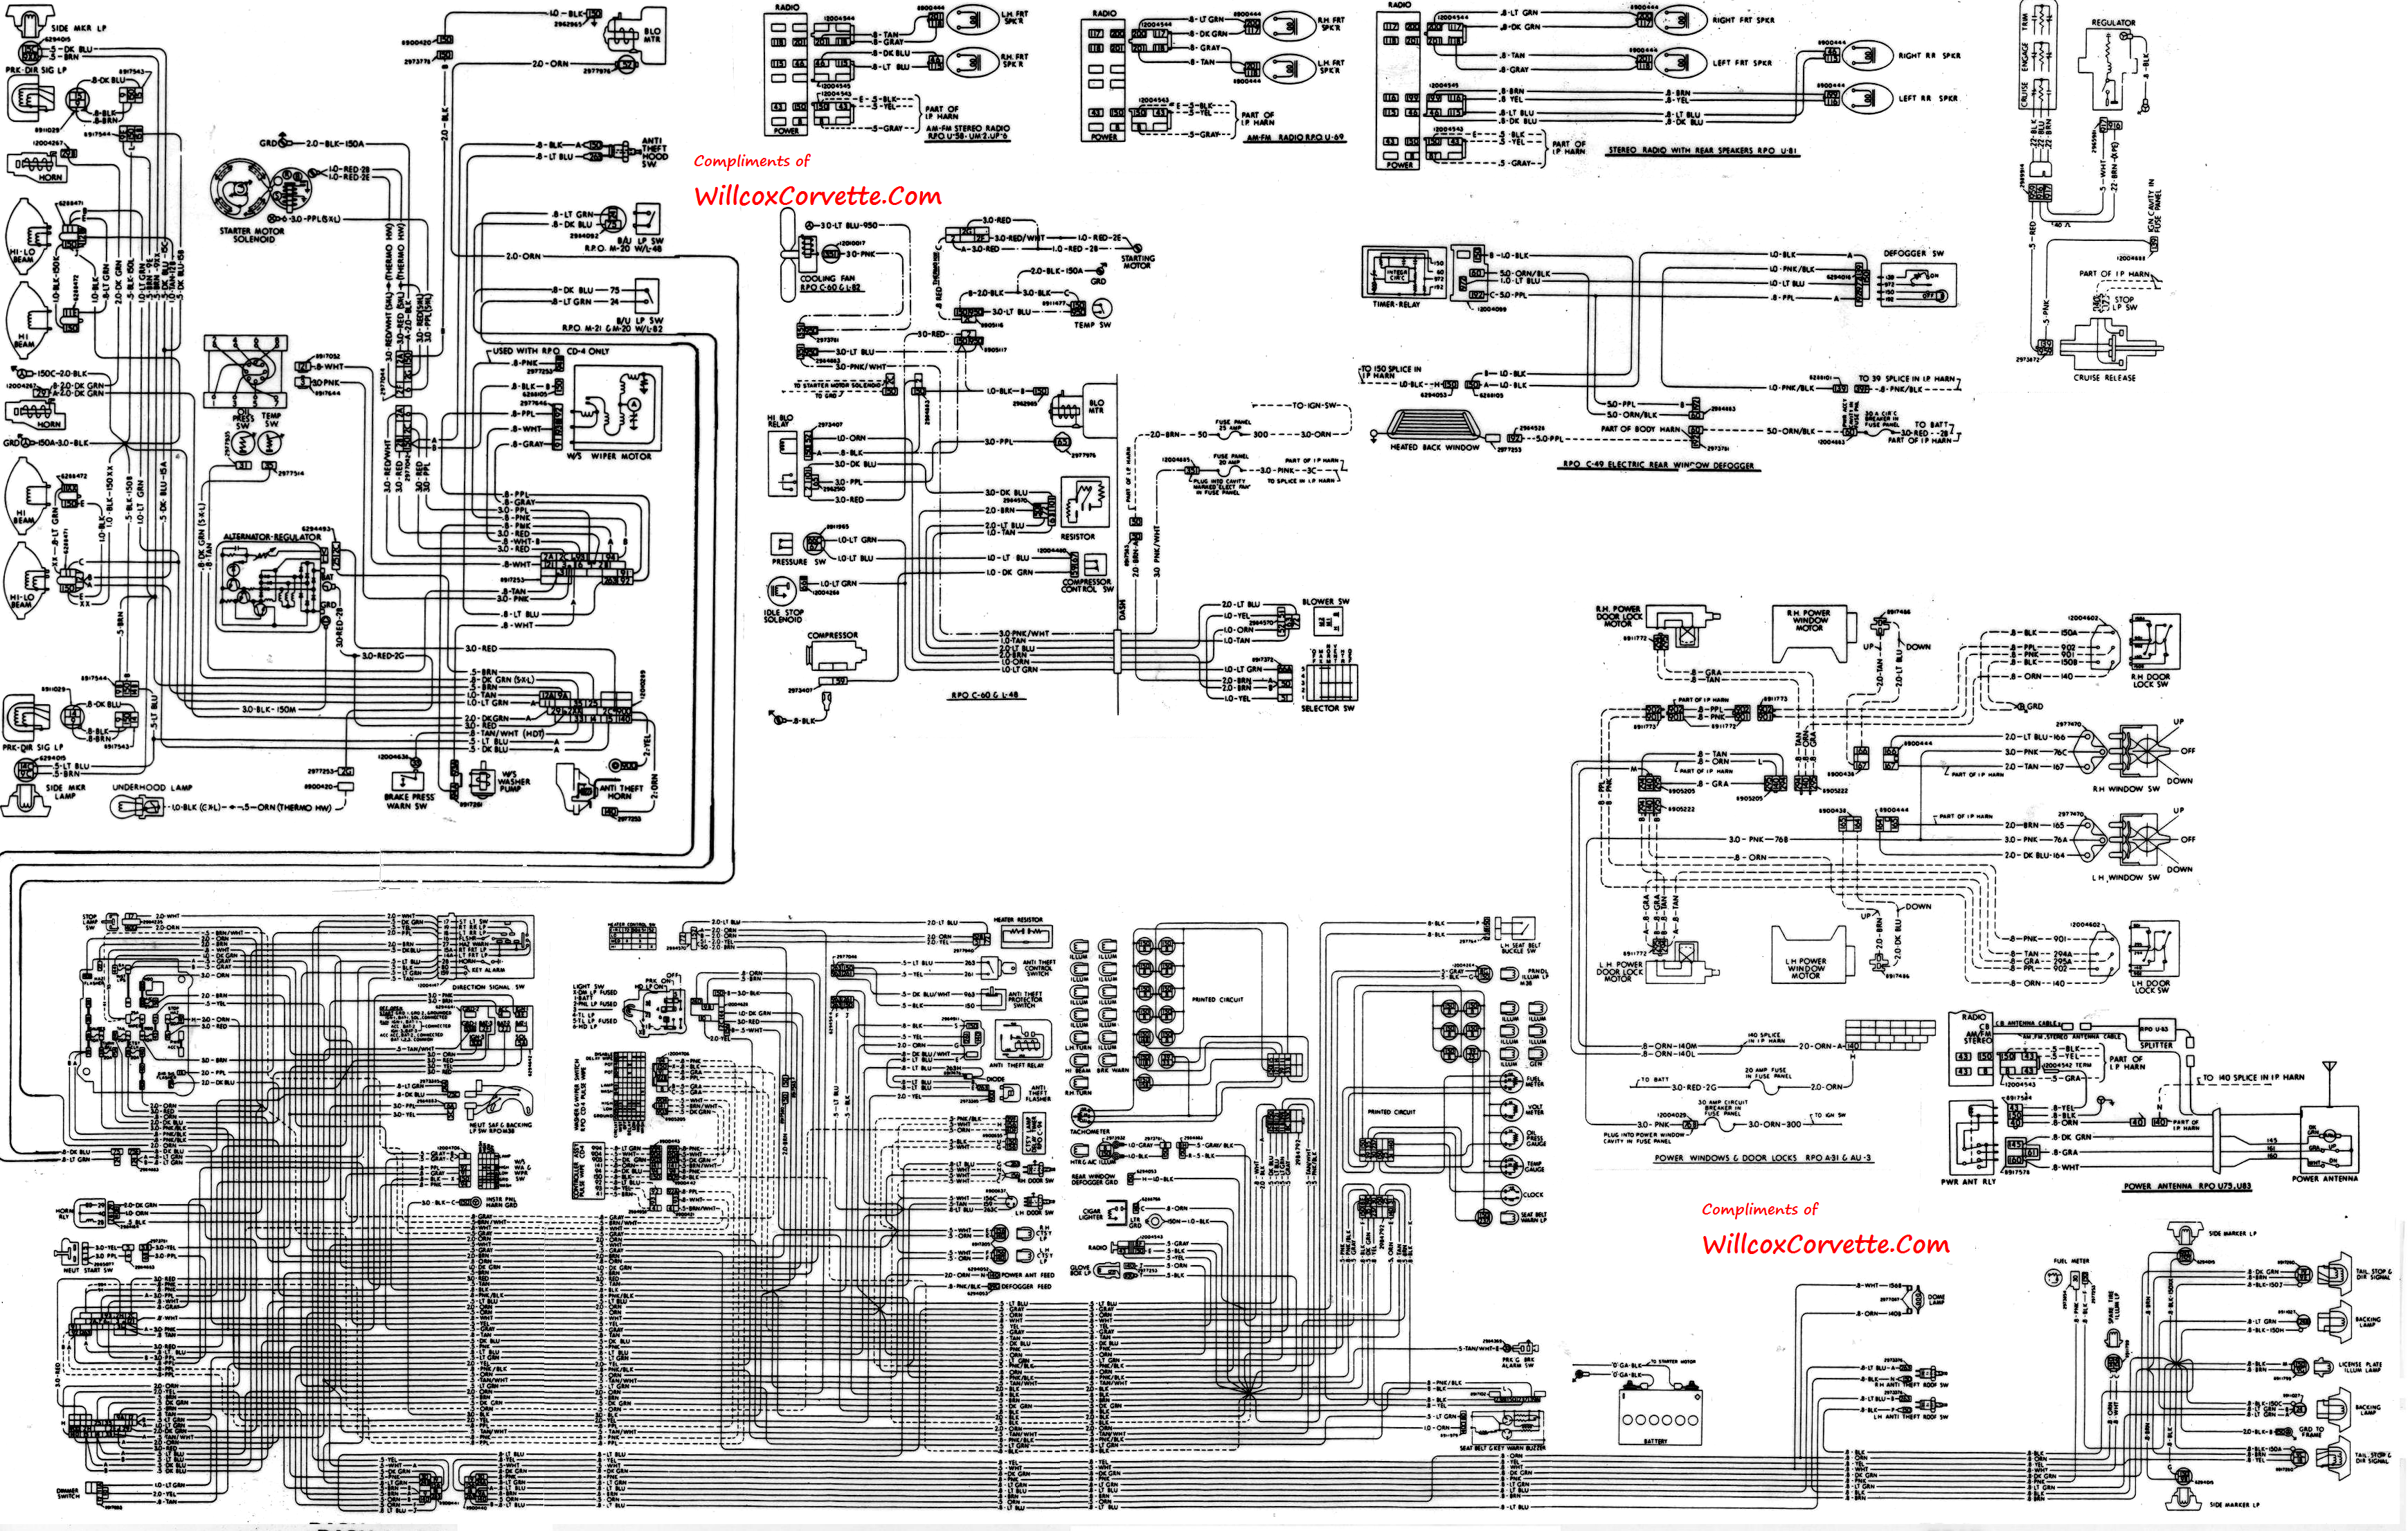 1979 wire diagram 1979 corvette tracer wiring diagram tracer schematic willcox 1984 corvette wiring diagram schematic at crackthecode.co